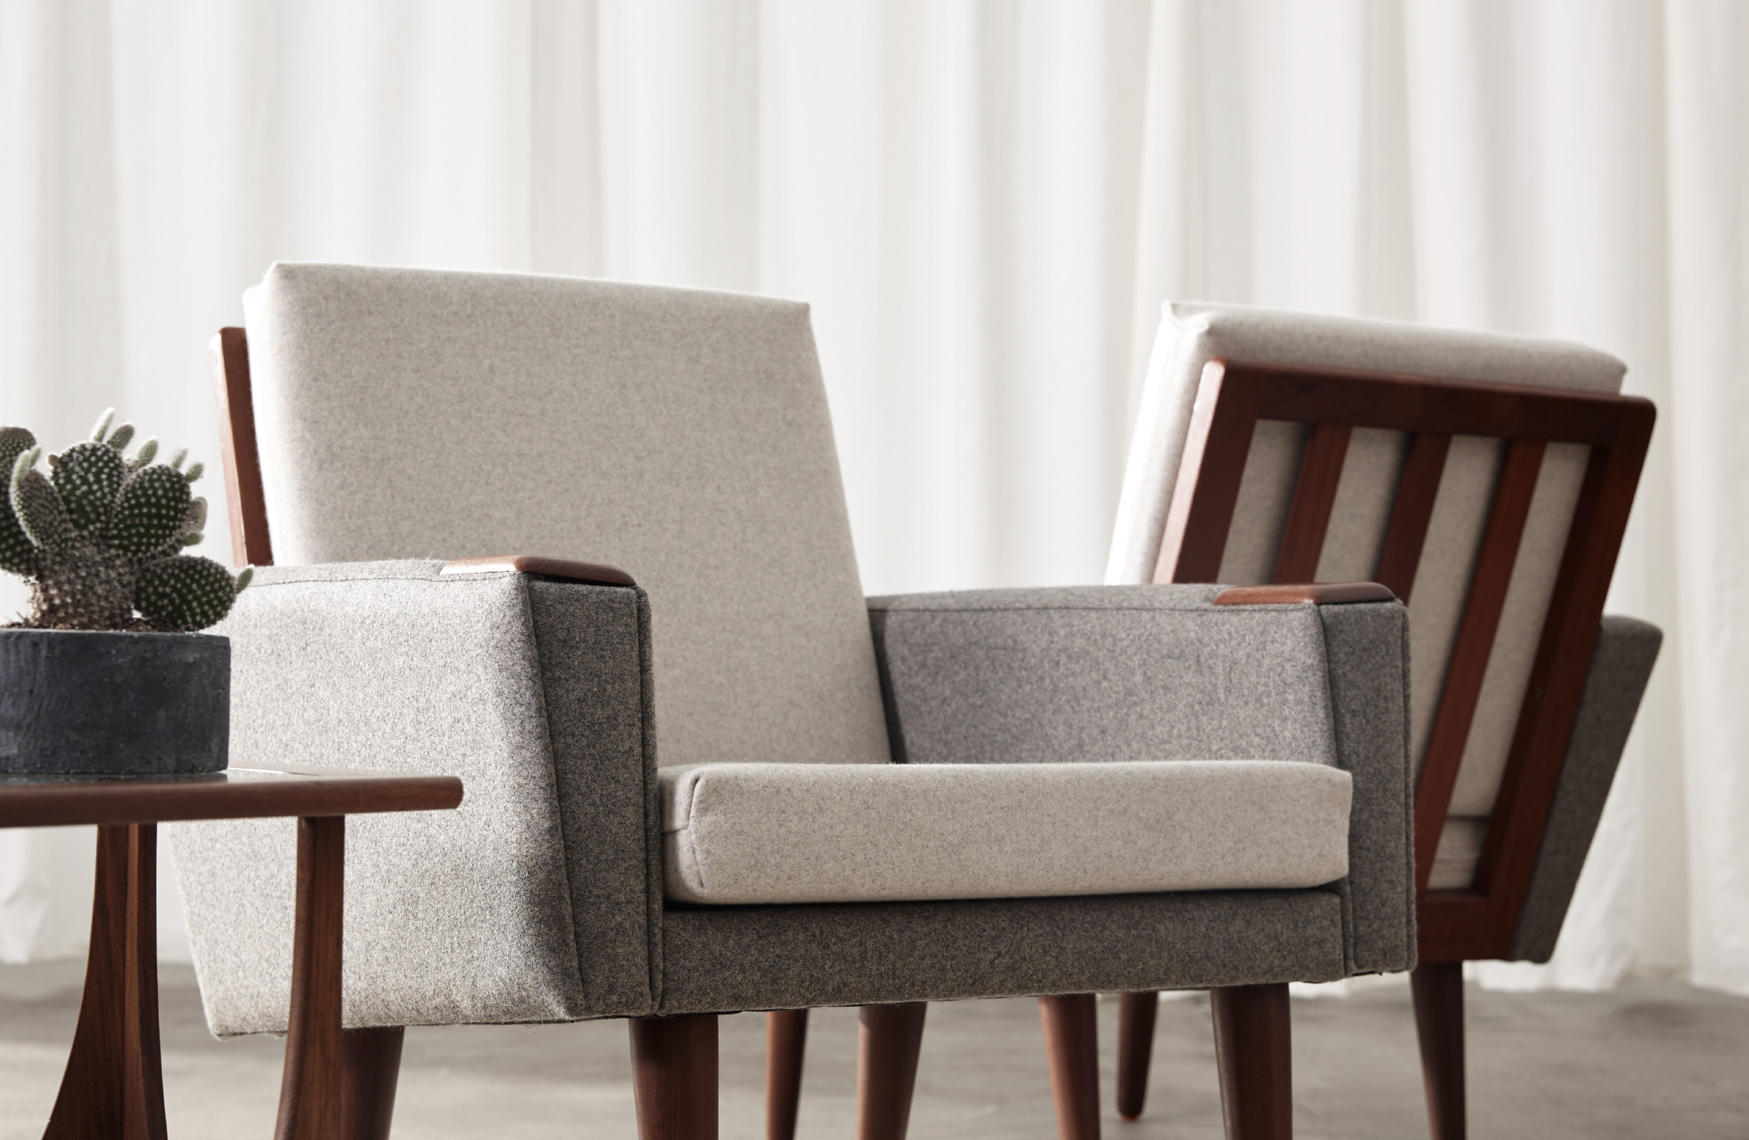 2 grey fabric armchairs with wooden legs San Francisco interior photographer